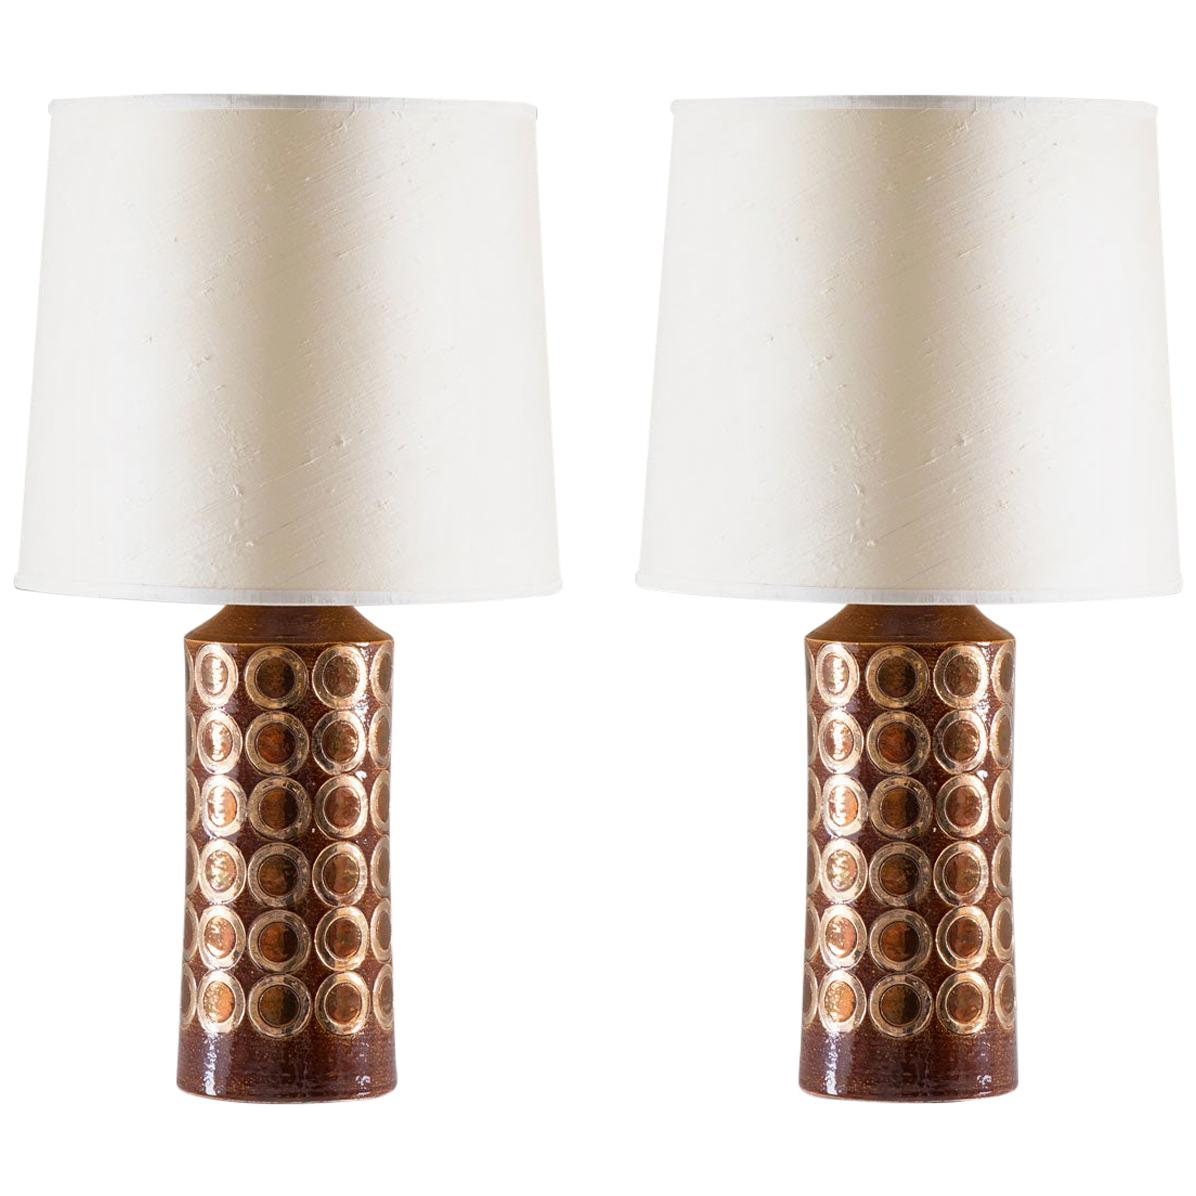 Midcentury Table Lamps by Aldo Londi for Bitossi